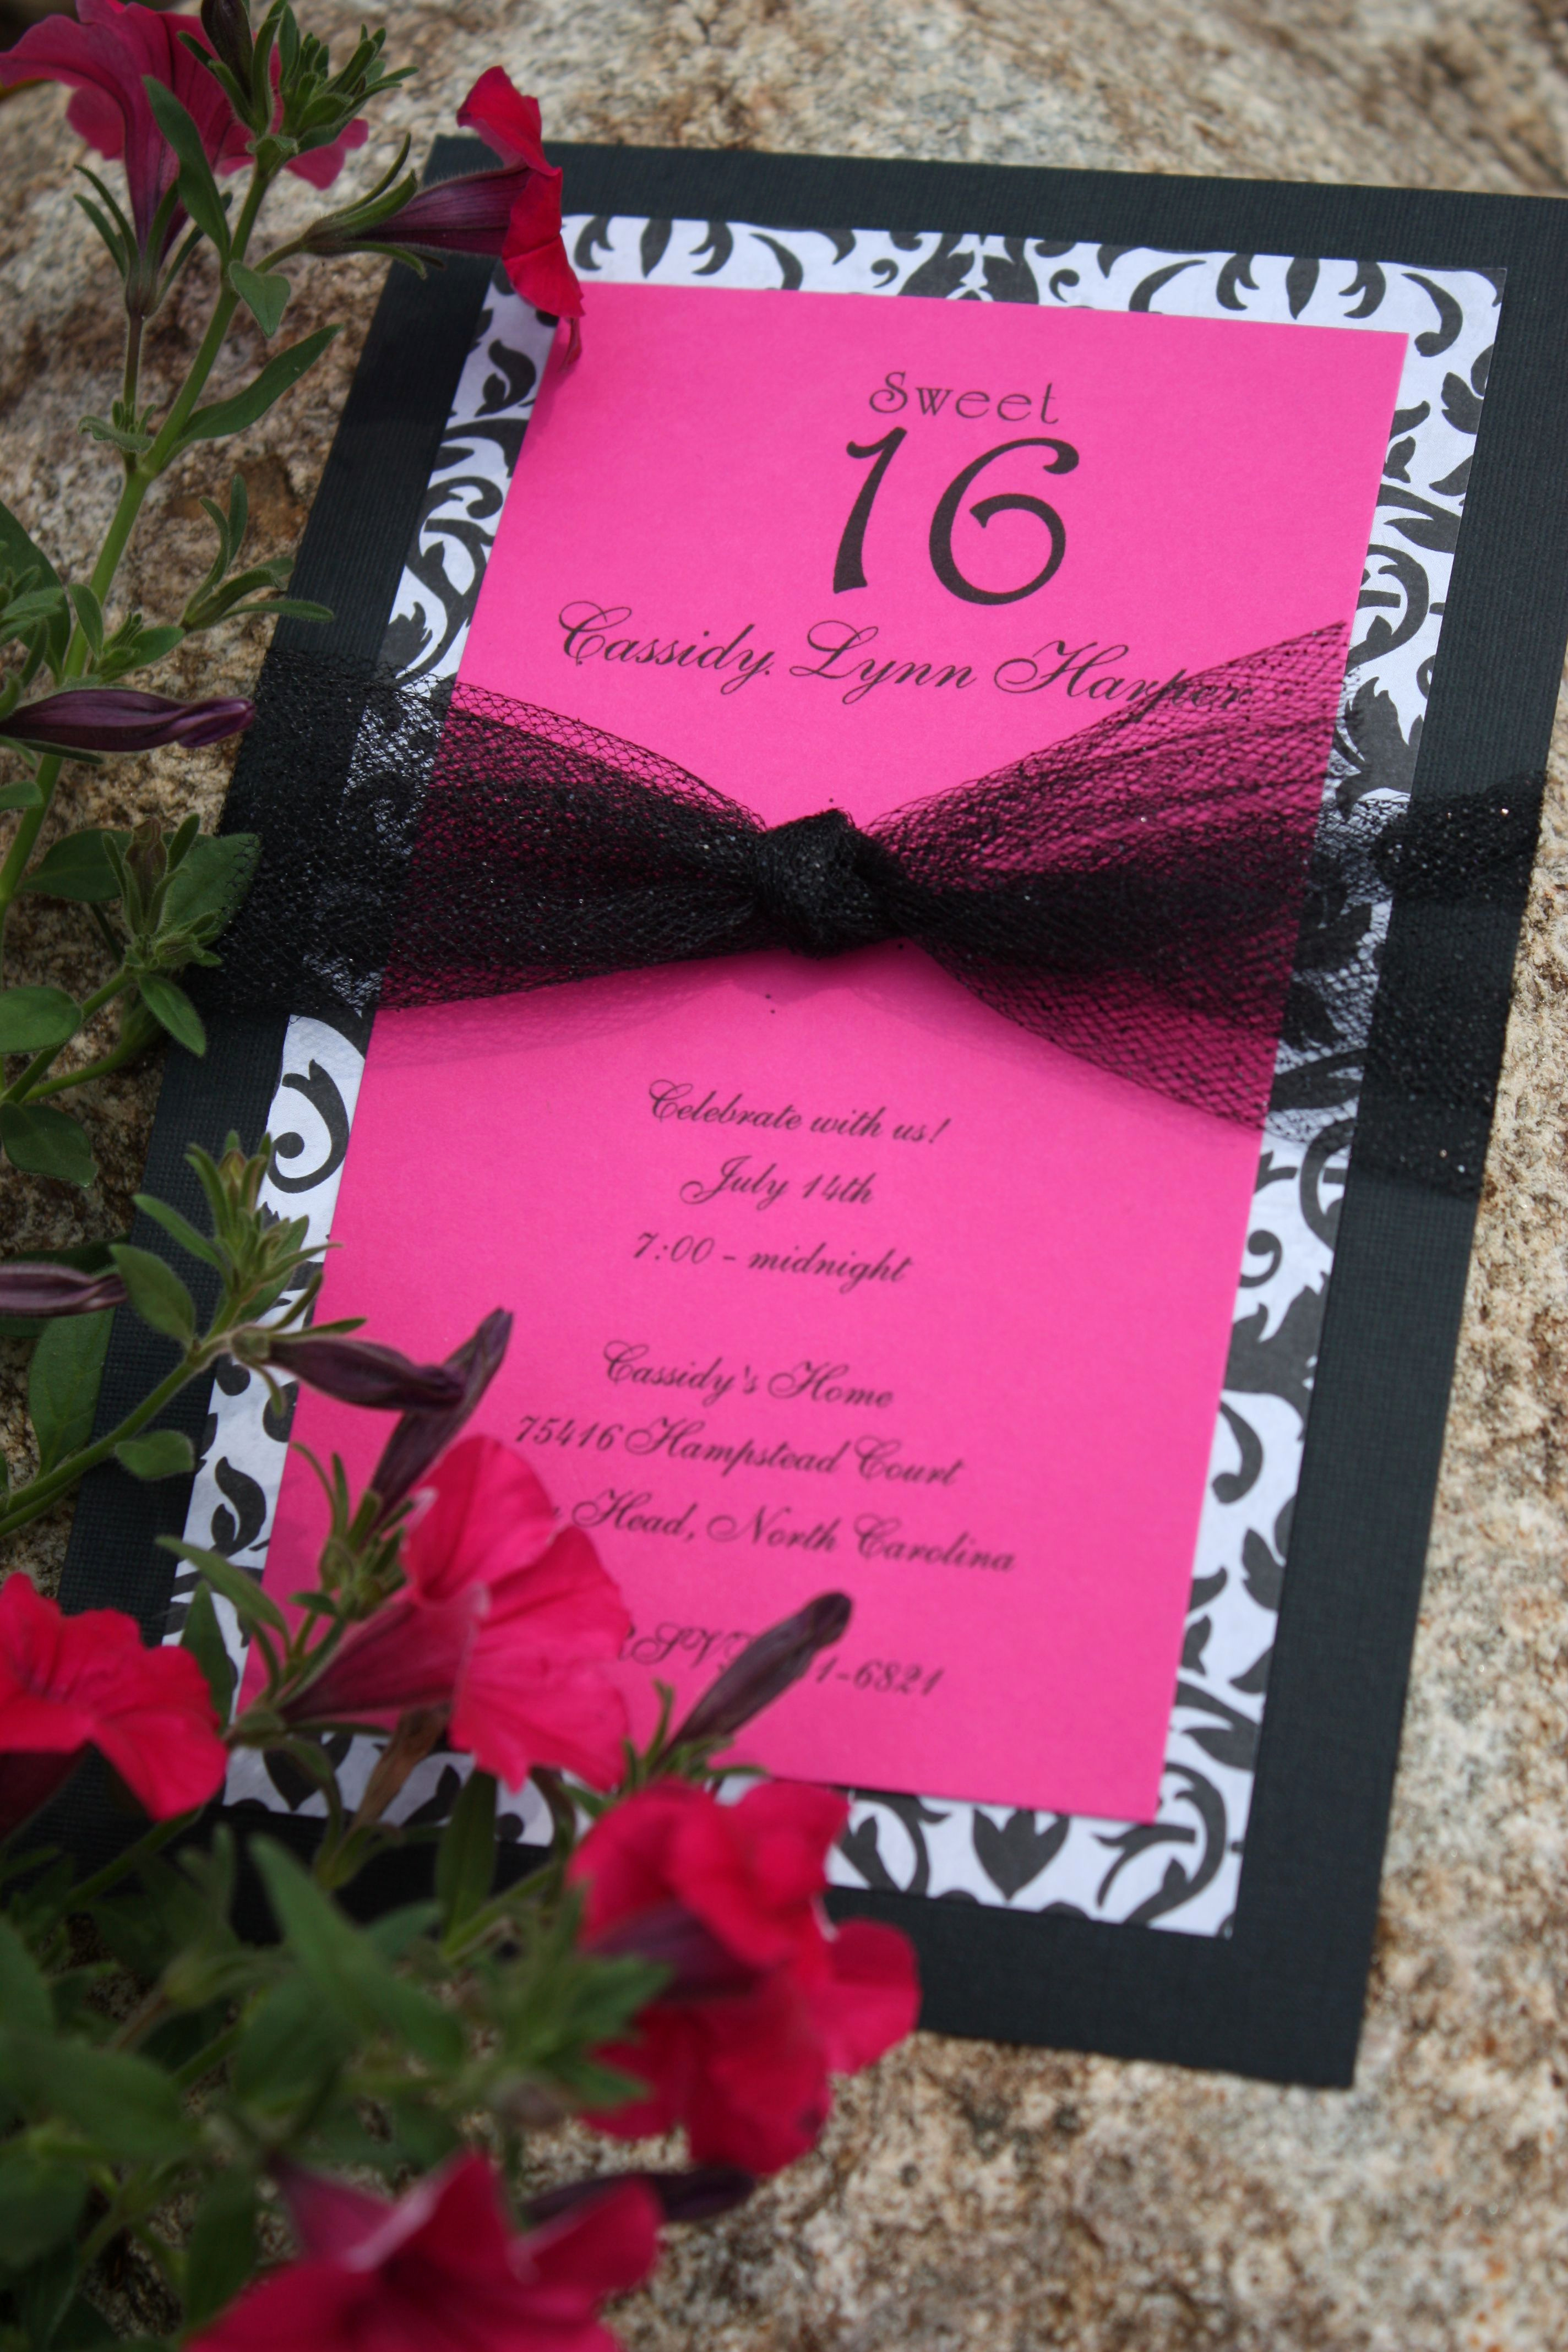 Homemade Birthday Invitation Ideas Best Of Sweet 16 Birthday Party Ideas Girls for at Home